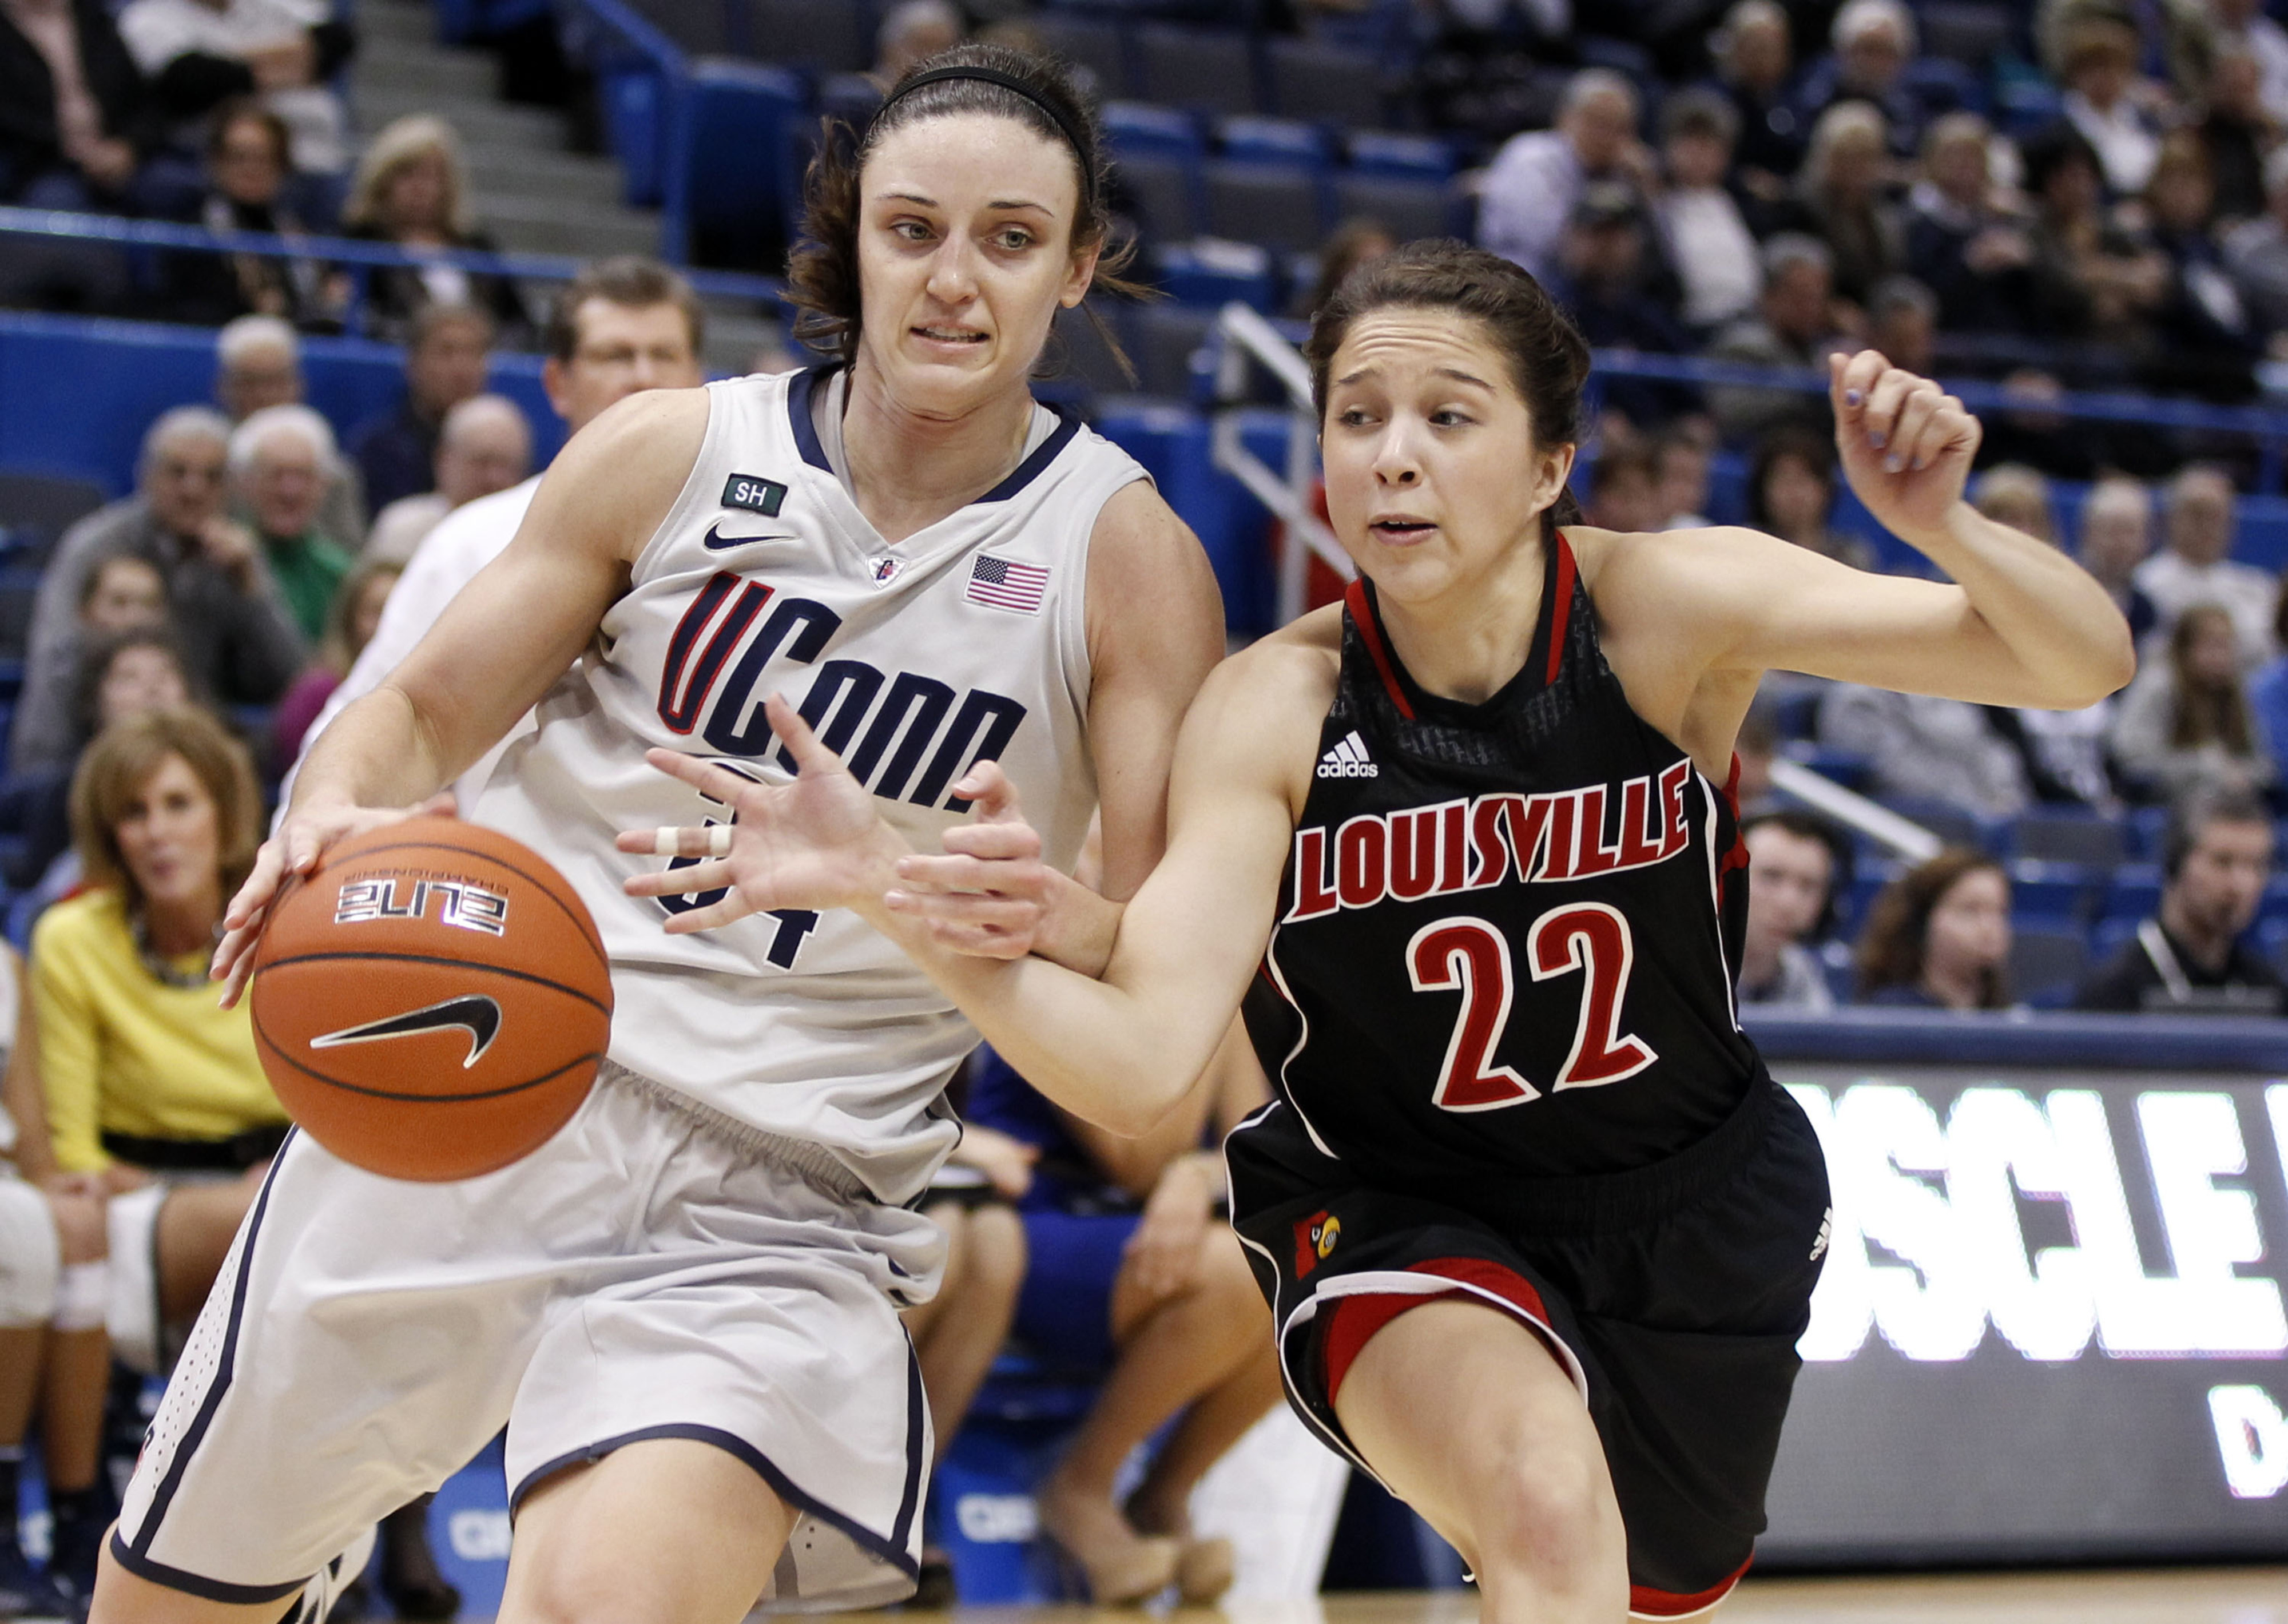 UConn Guard Kelly Faris drives to the basket with Louisville Guard Jude Schimmel defending her in a January regular season game.  Expect more of the same tonight in the national championship.